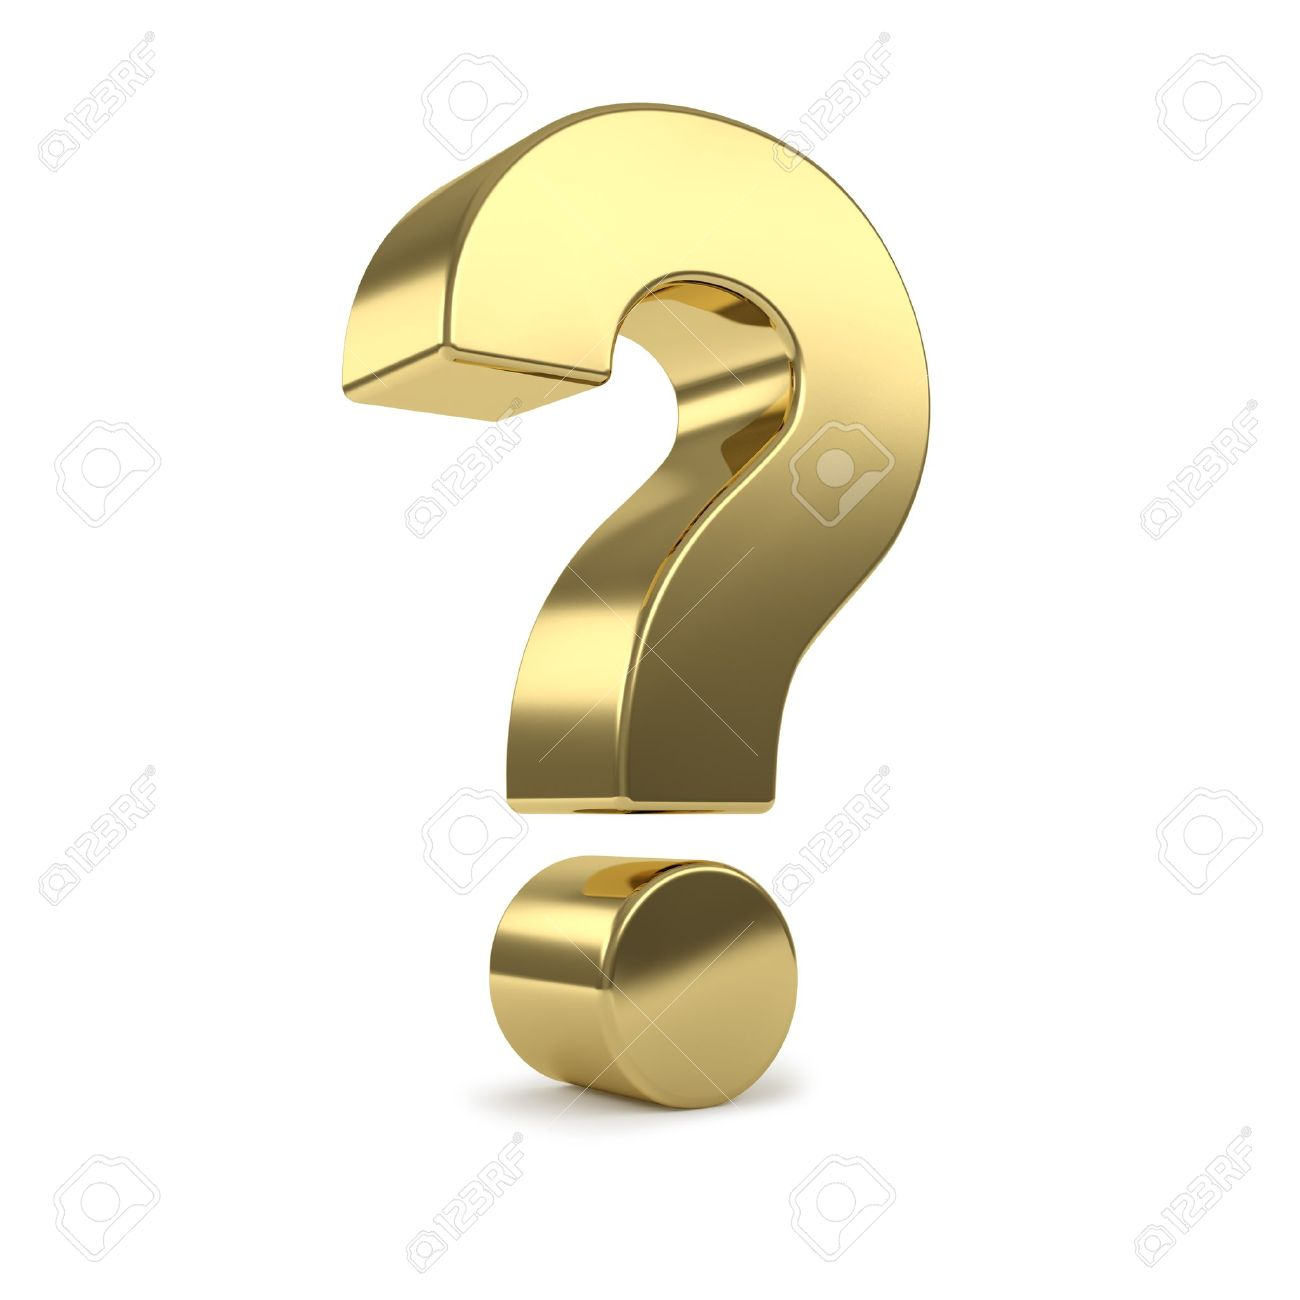 gold 3d question mark Stock Photo - 8808736